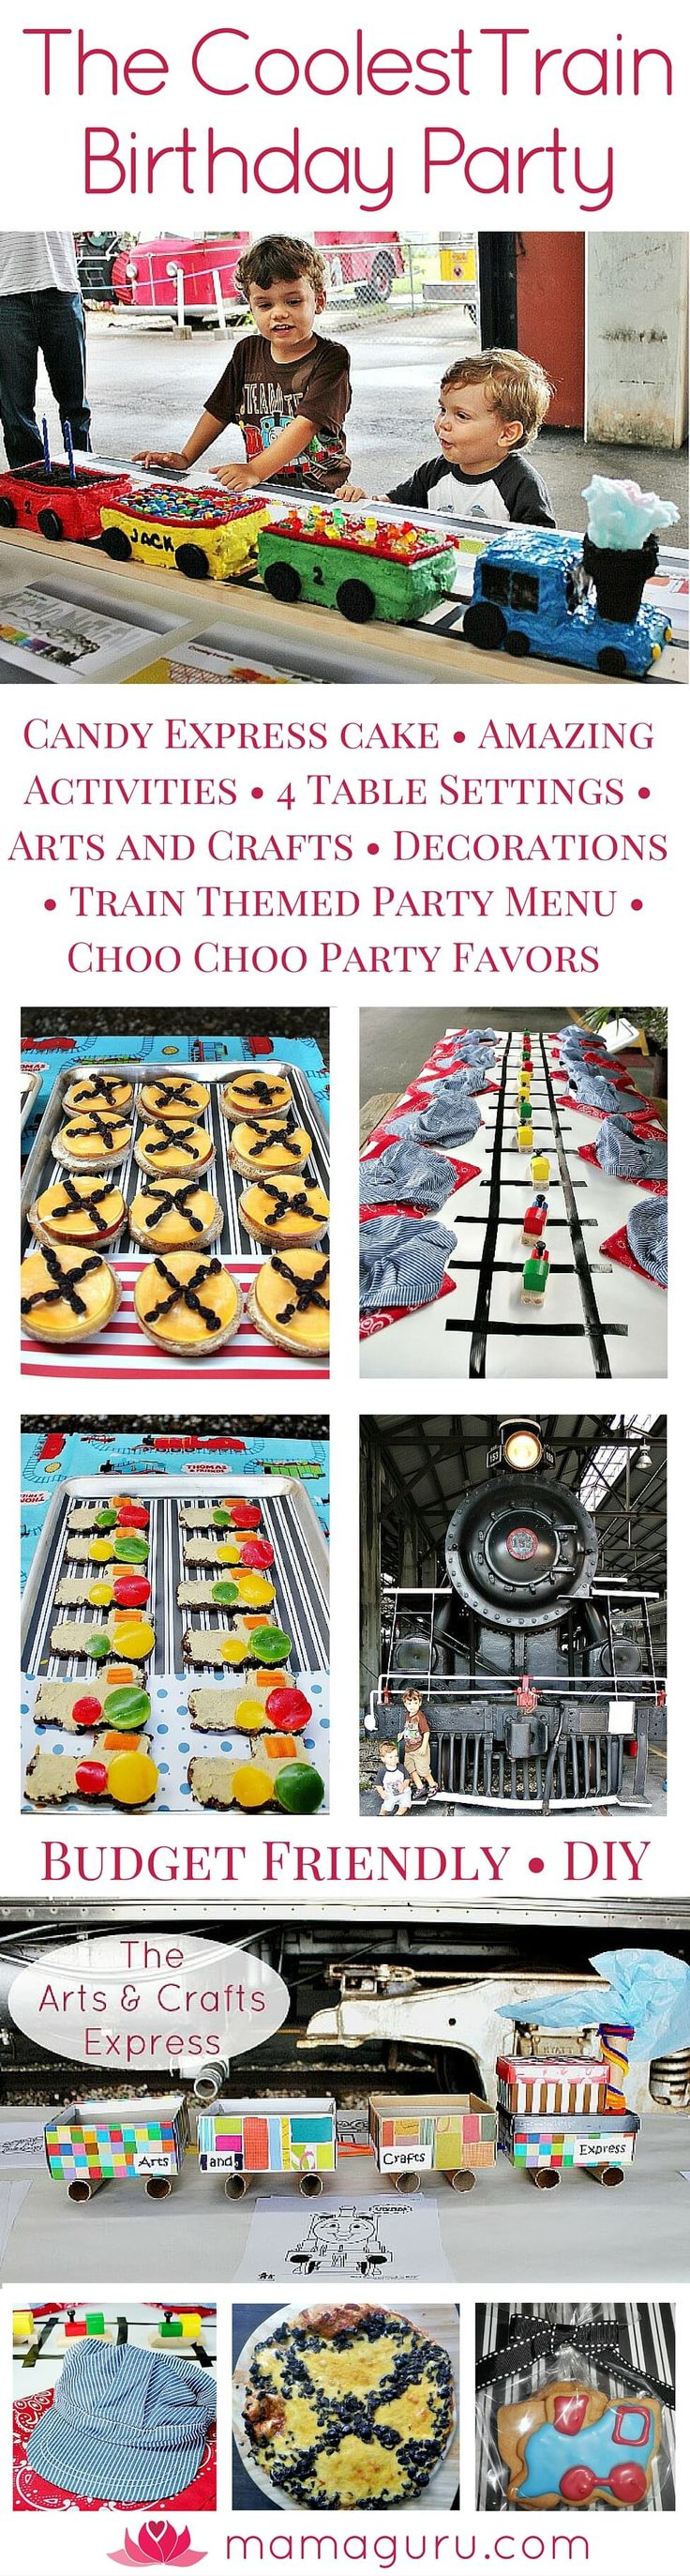 Train Birthday Party • Children's Birthday Party Ideas • Boy Birthday Party • Train Cake